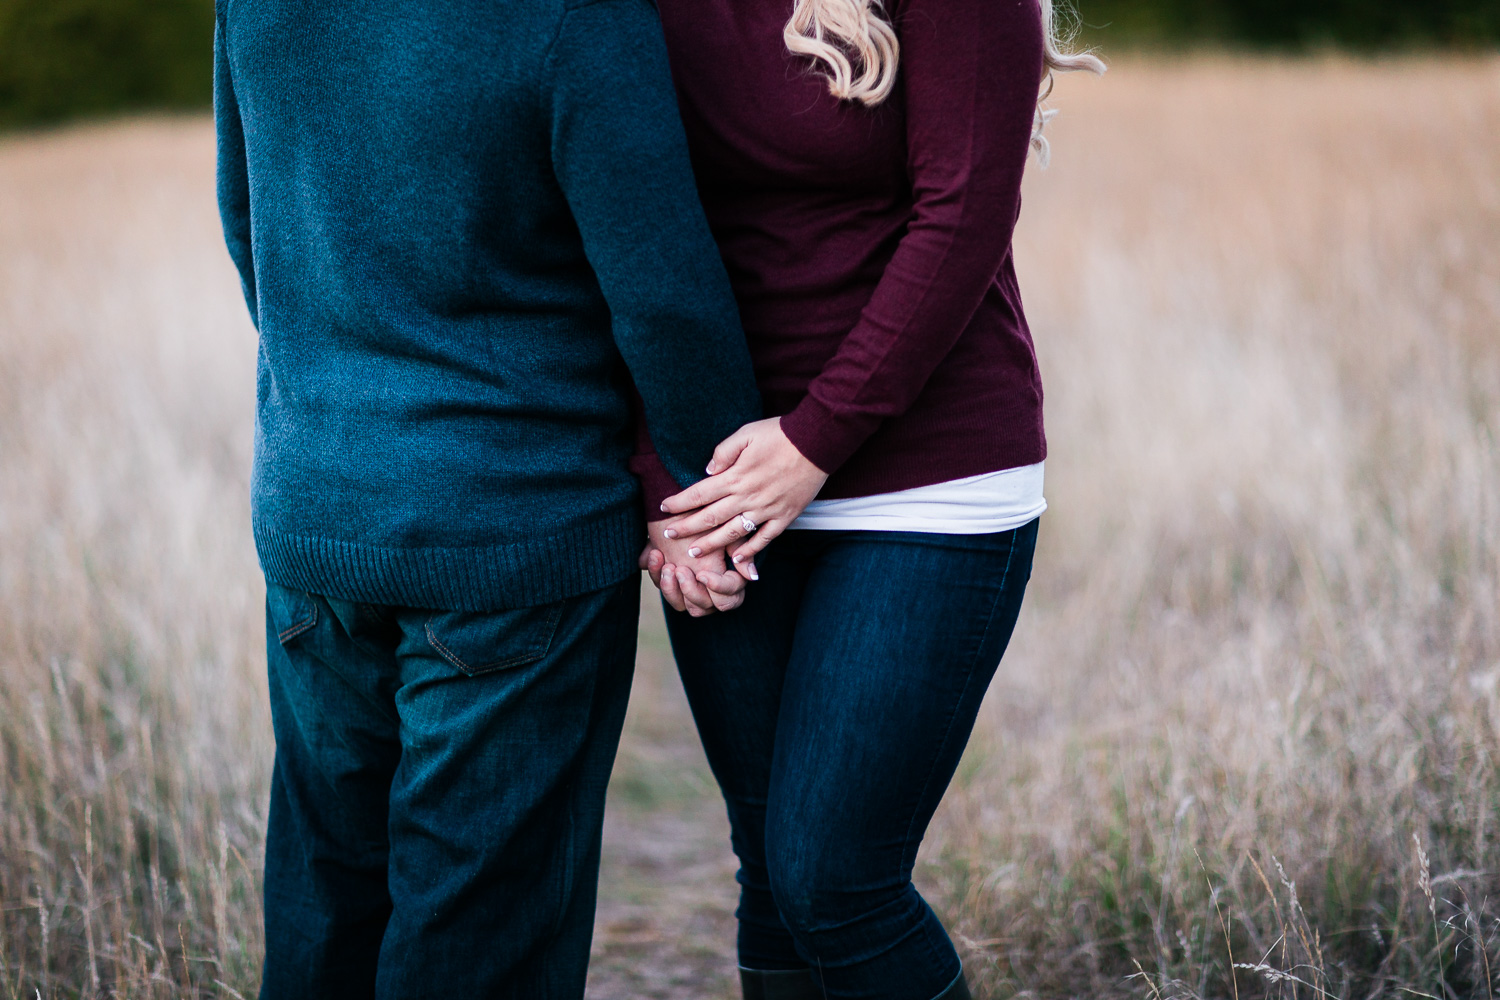 seattle-engagement-harth-photography-79.jpg